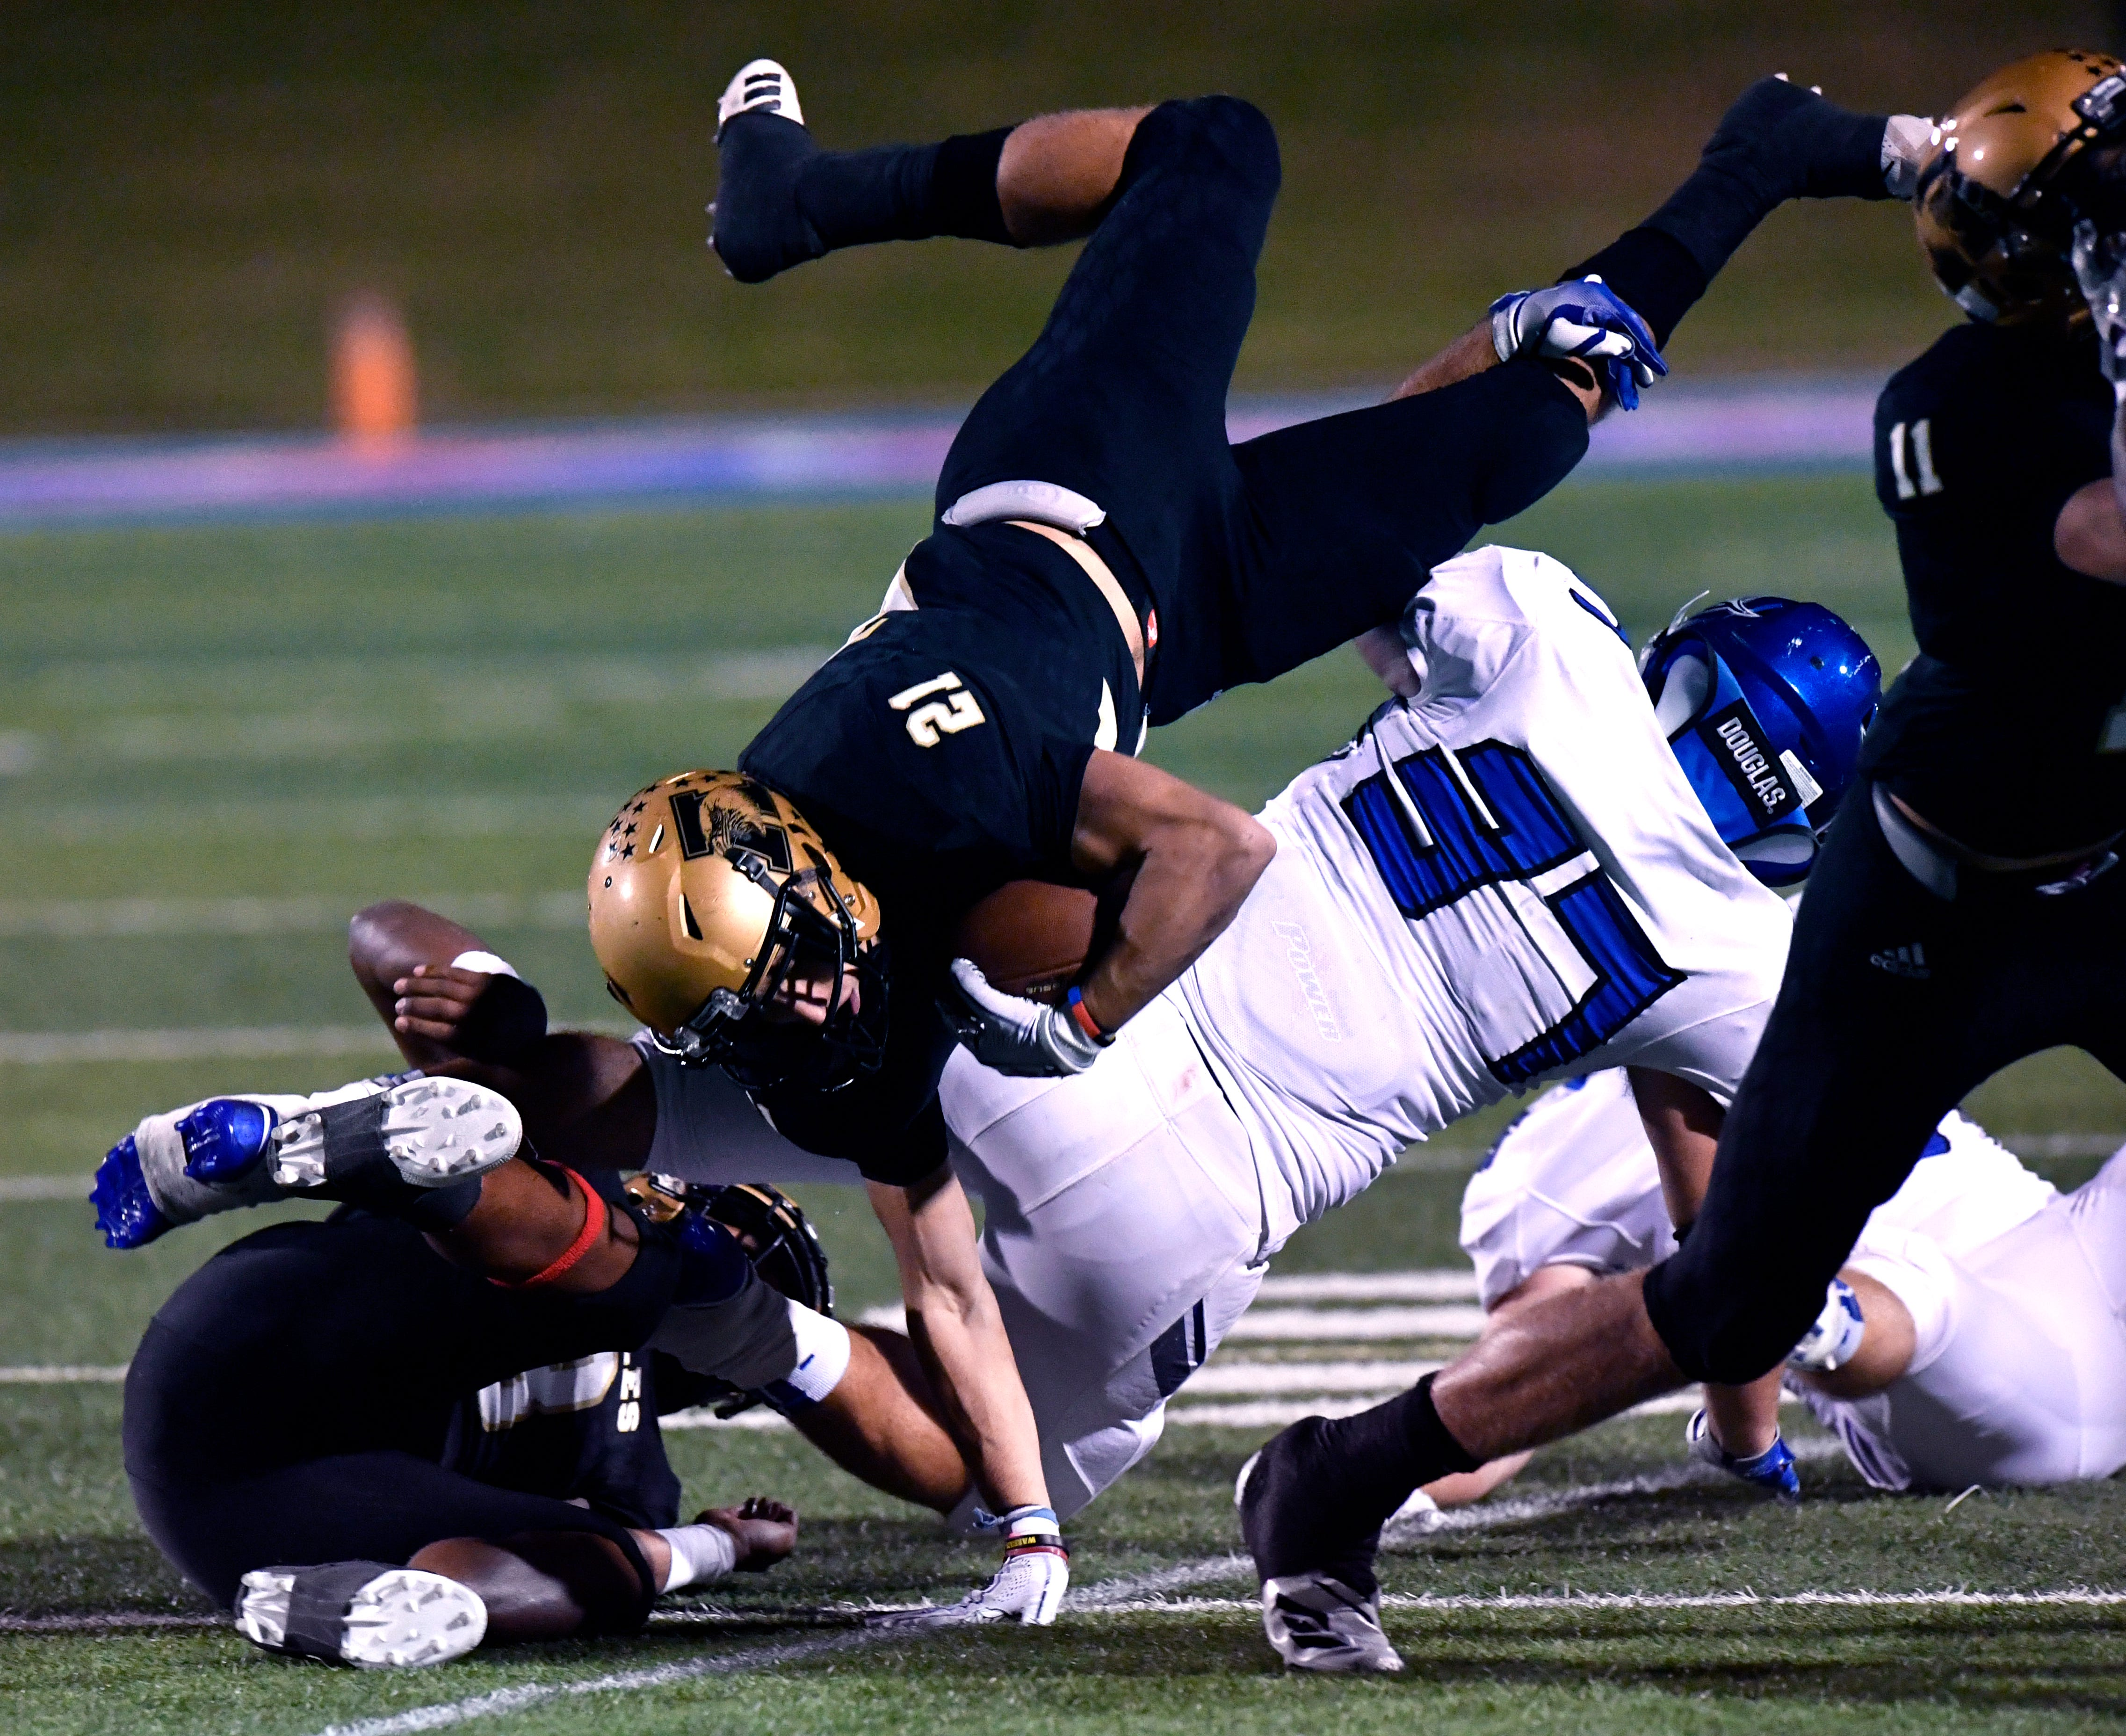 Abilene High wide receiver Reese Pettijohn dives over Weatherford linebacker Lucas Loran during Friday's game at Shotwell Stadium Oct. 26, 2018.